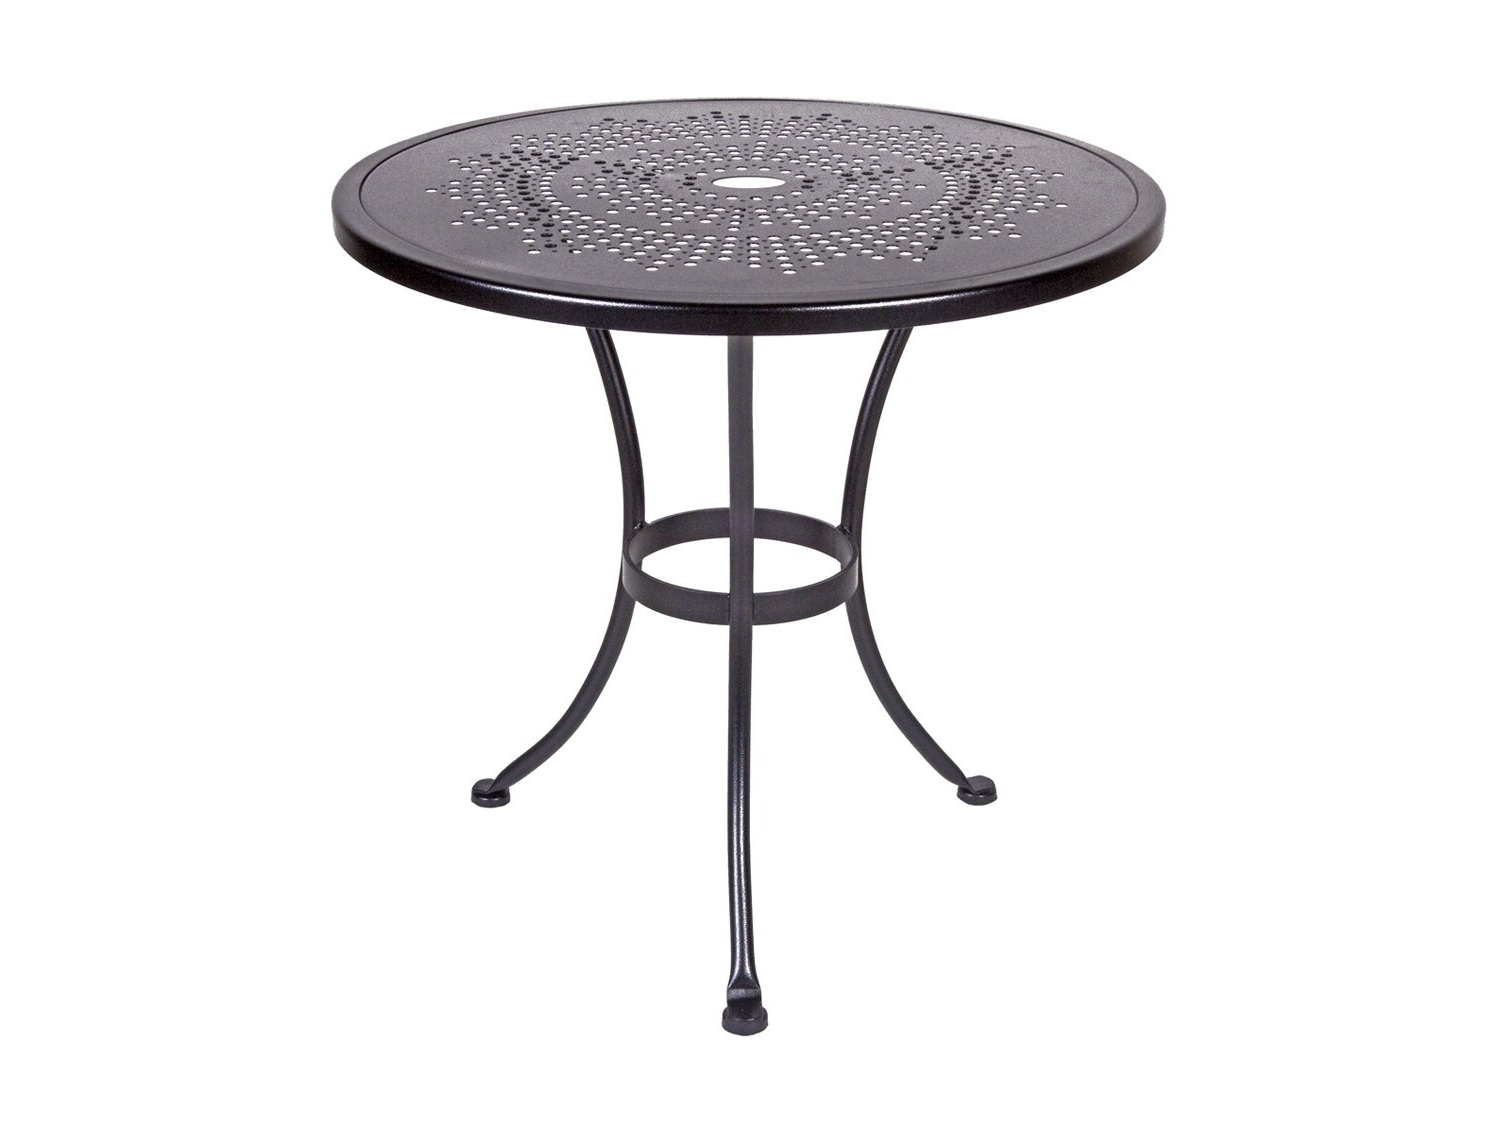 Patio Tables With Umbrella Hole Pertaining To Newest Stylish Patio Table Umbrella — Wilson Home Ideas : Making Patio (View 8 of 20)